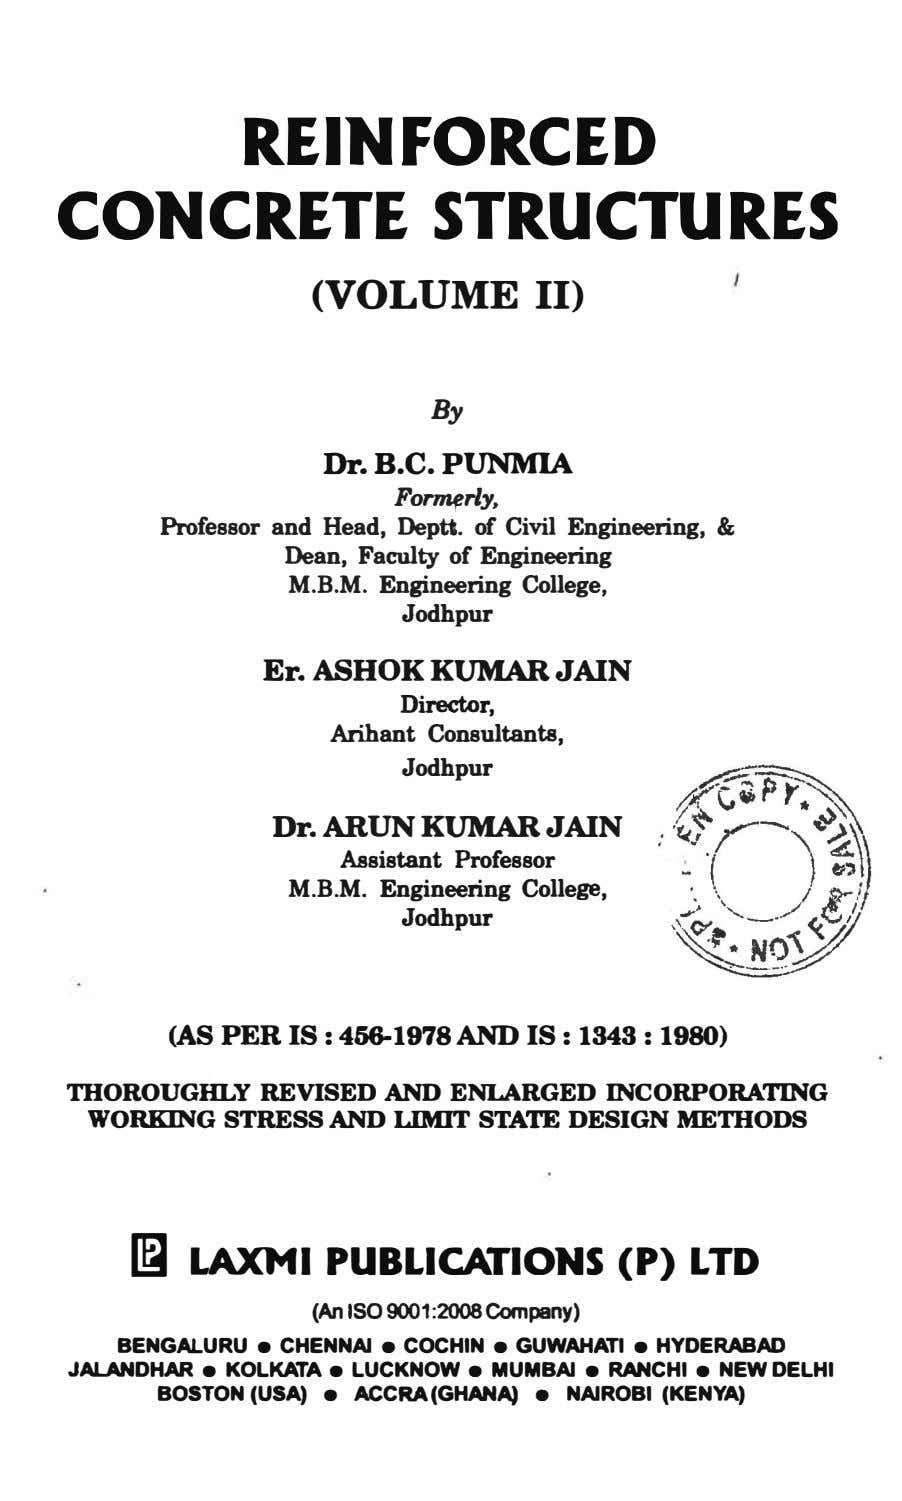 REINFORCED CONCRETE STRUCTURES (VOLUME II) By Dr. B.C. PUNMIA For1111rly, Professor and Head, Deptt. of